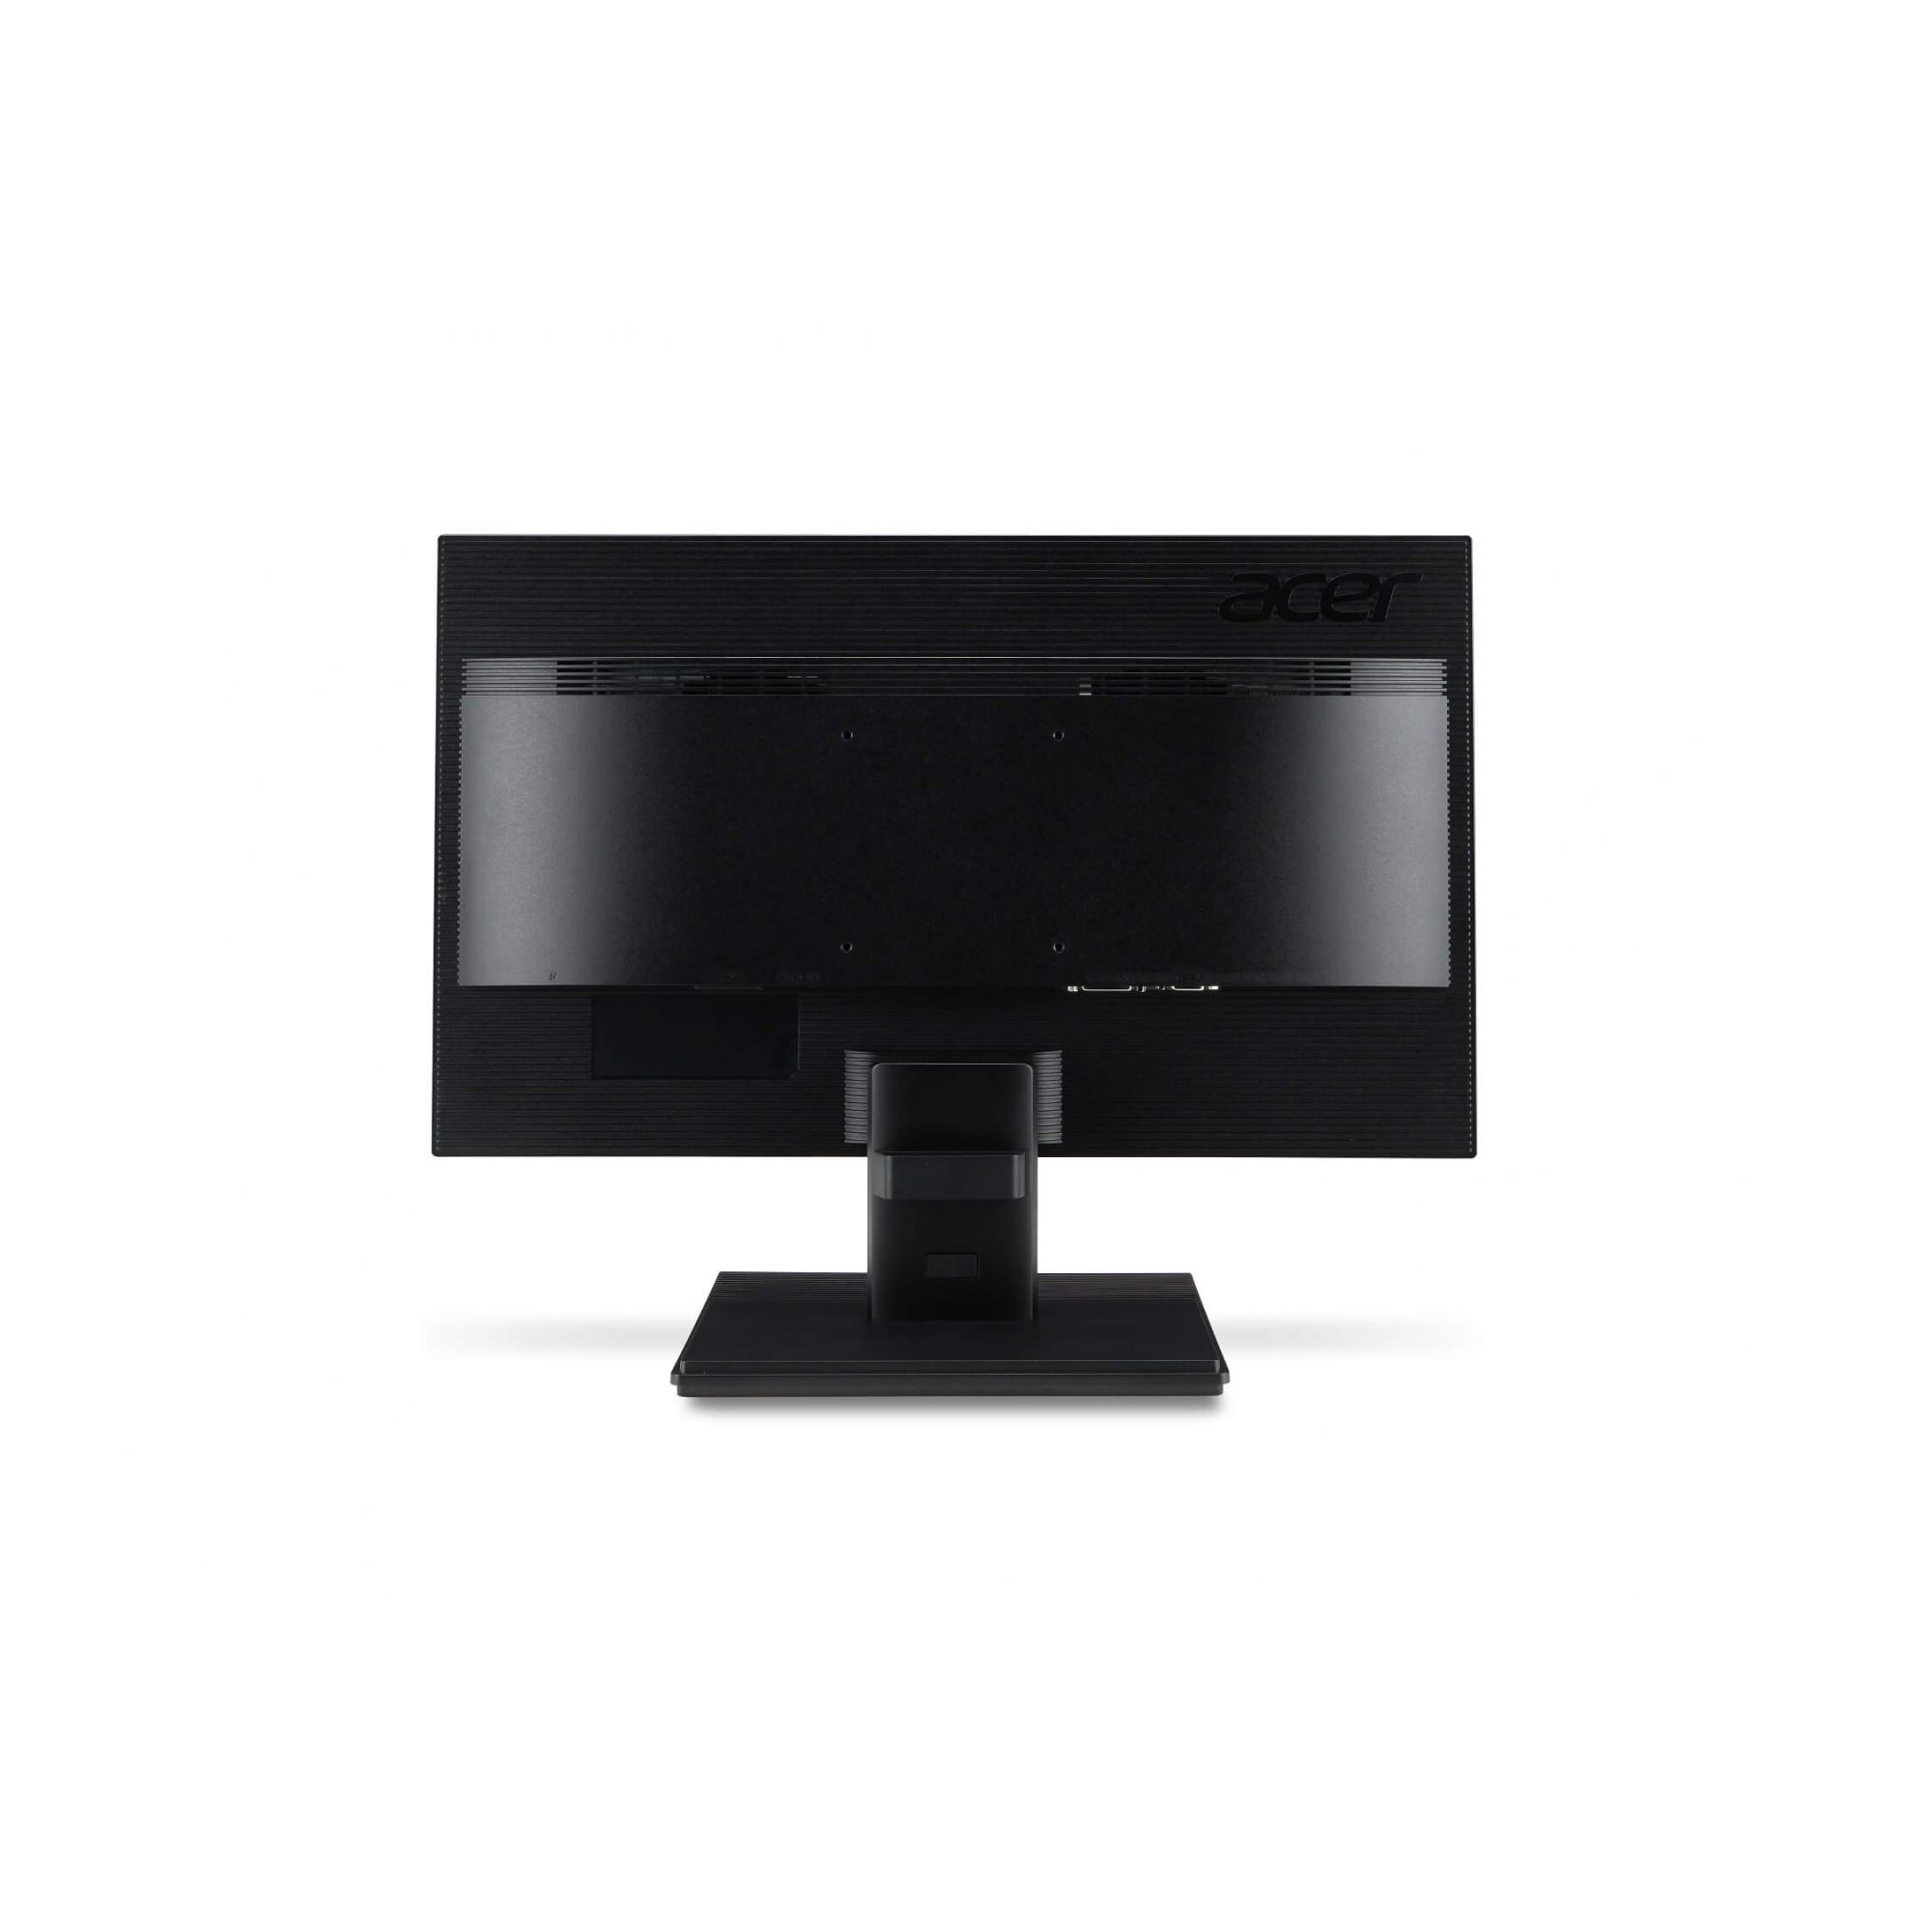 Monitor ACER 19,5 LED Widescreen HDMI V206HQL 2